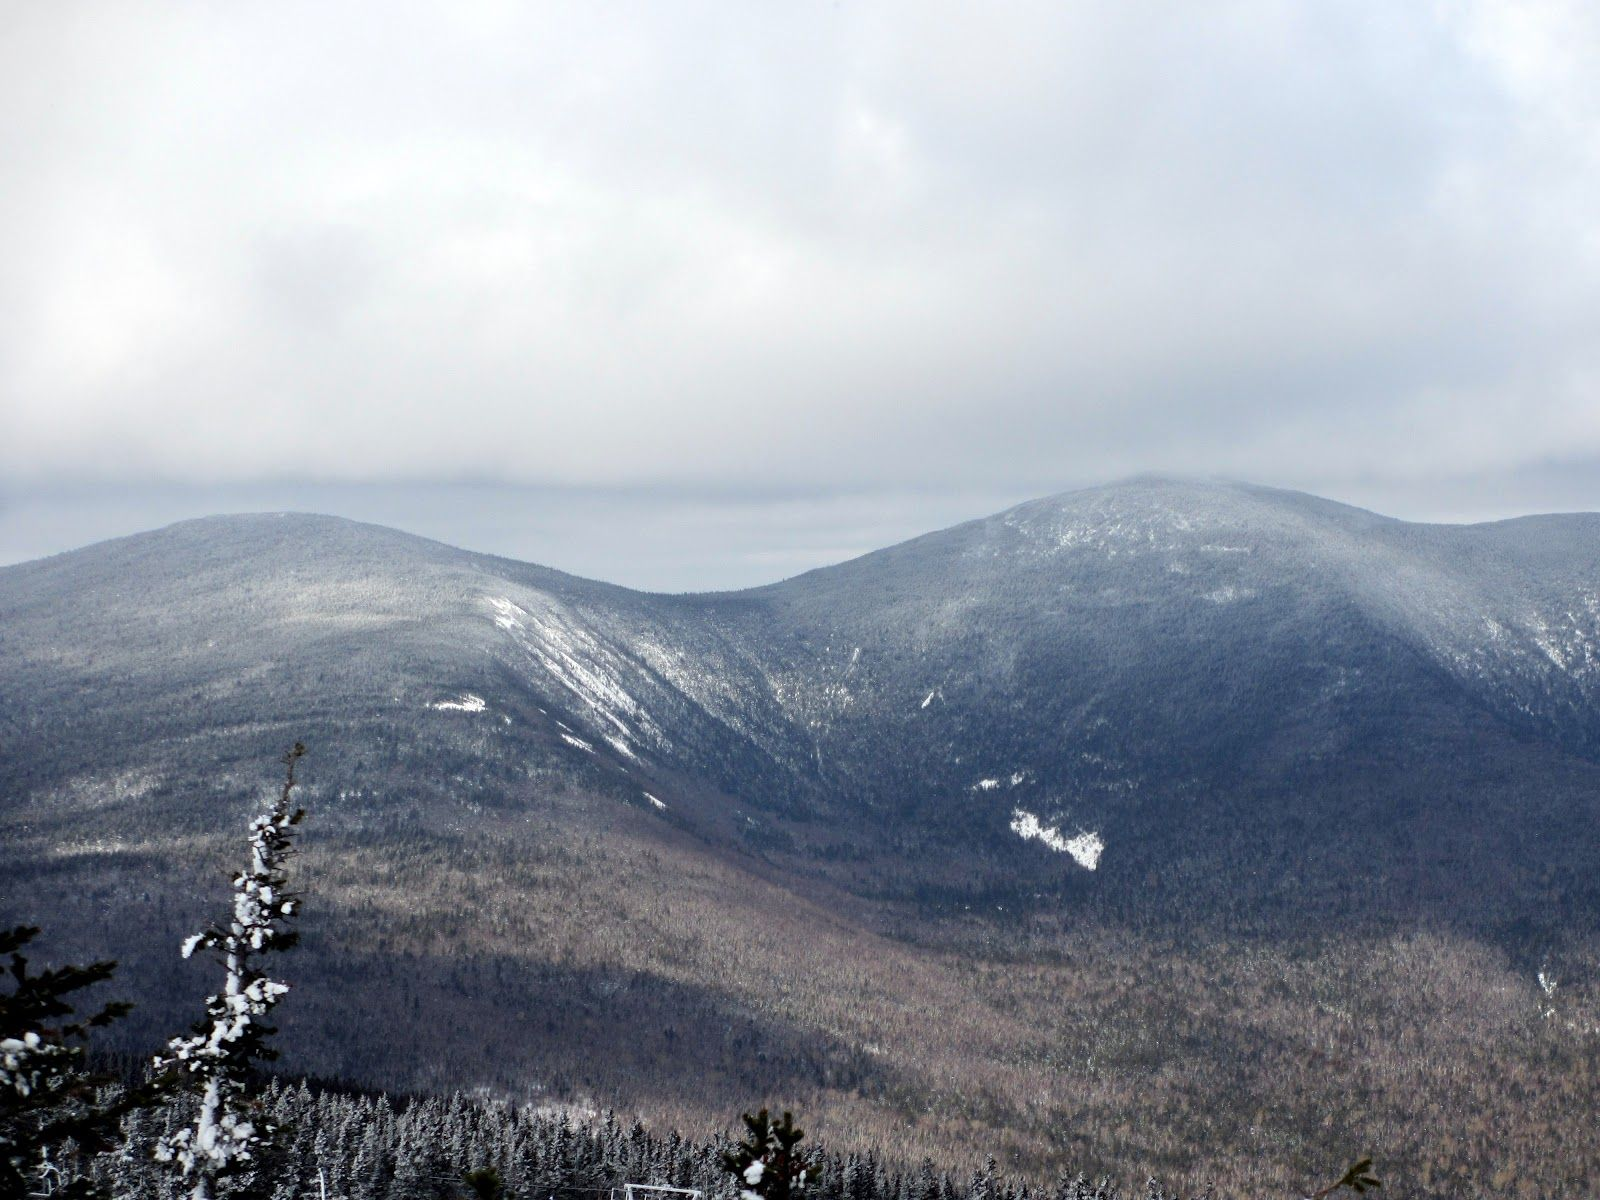 Crocker Mountain is a 4,228 ft peak located in Carrabassett Valley, Franklin County, Maine, in the United States.